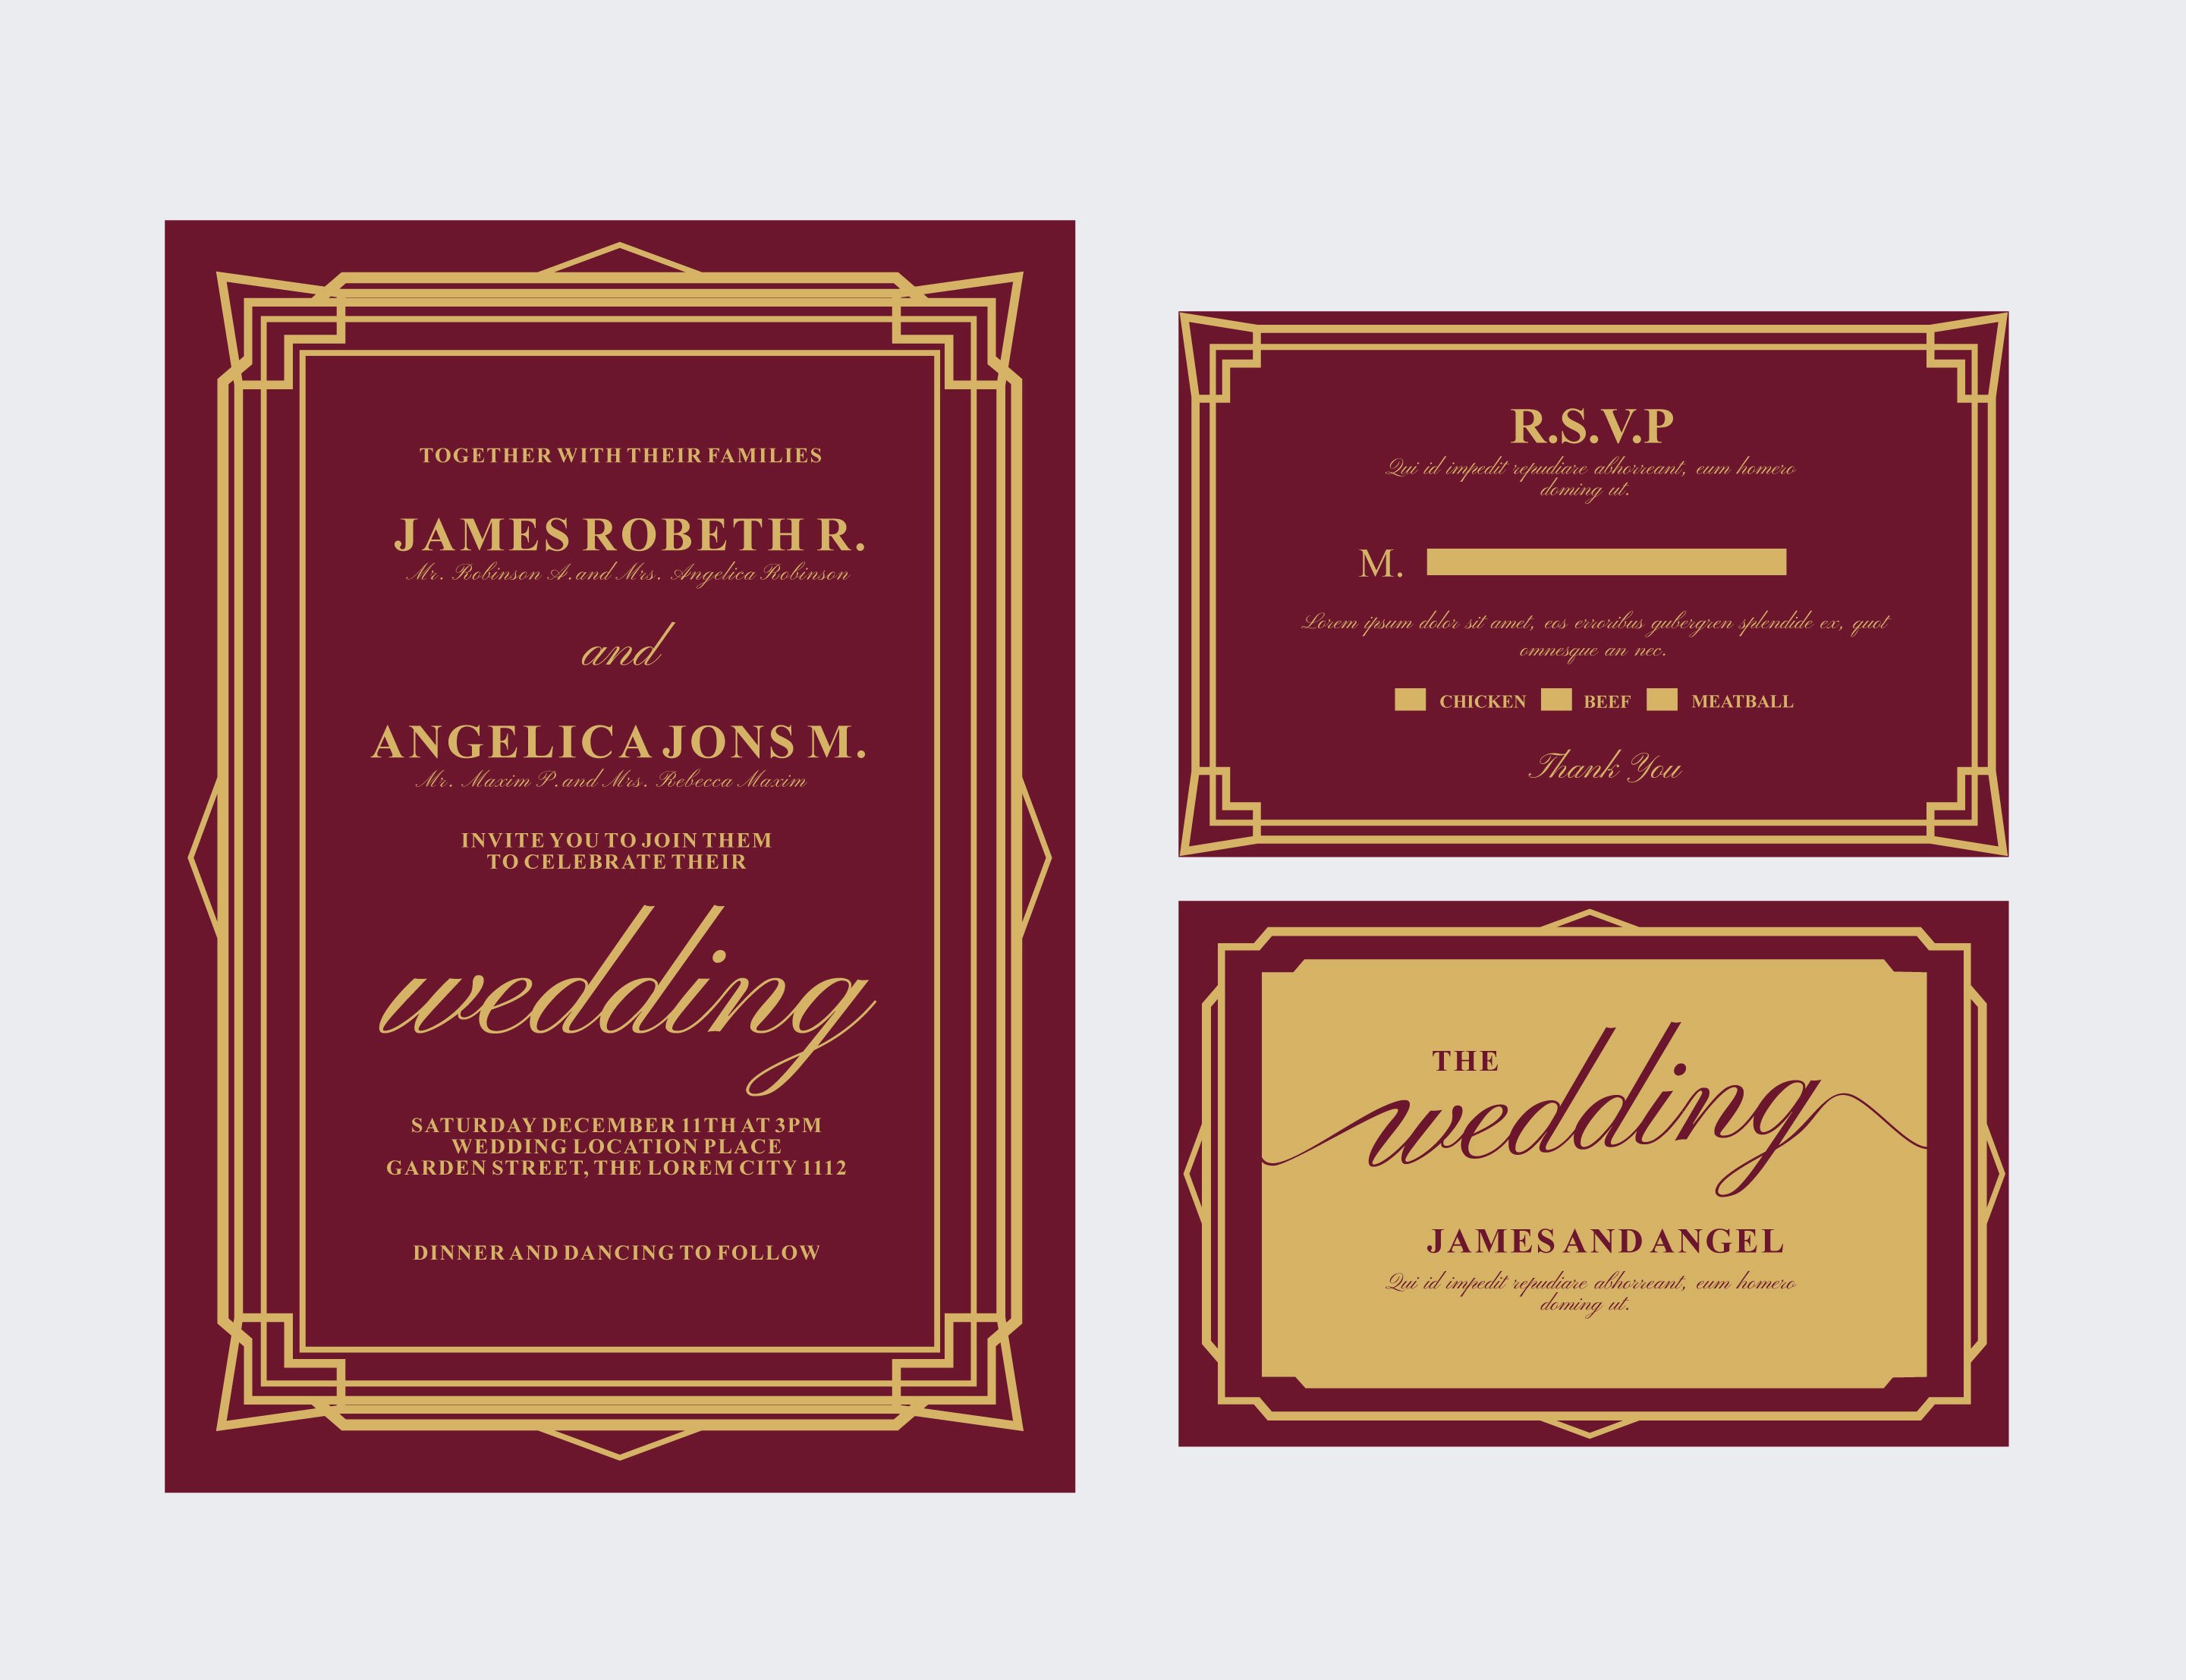 Indian Wedding Card Free Vector Art 395 Free Downloads